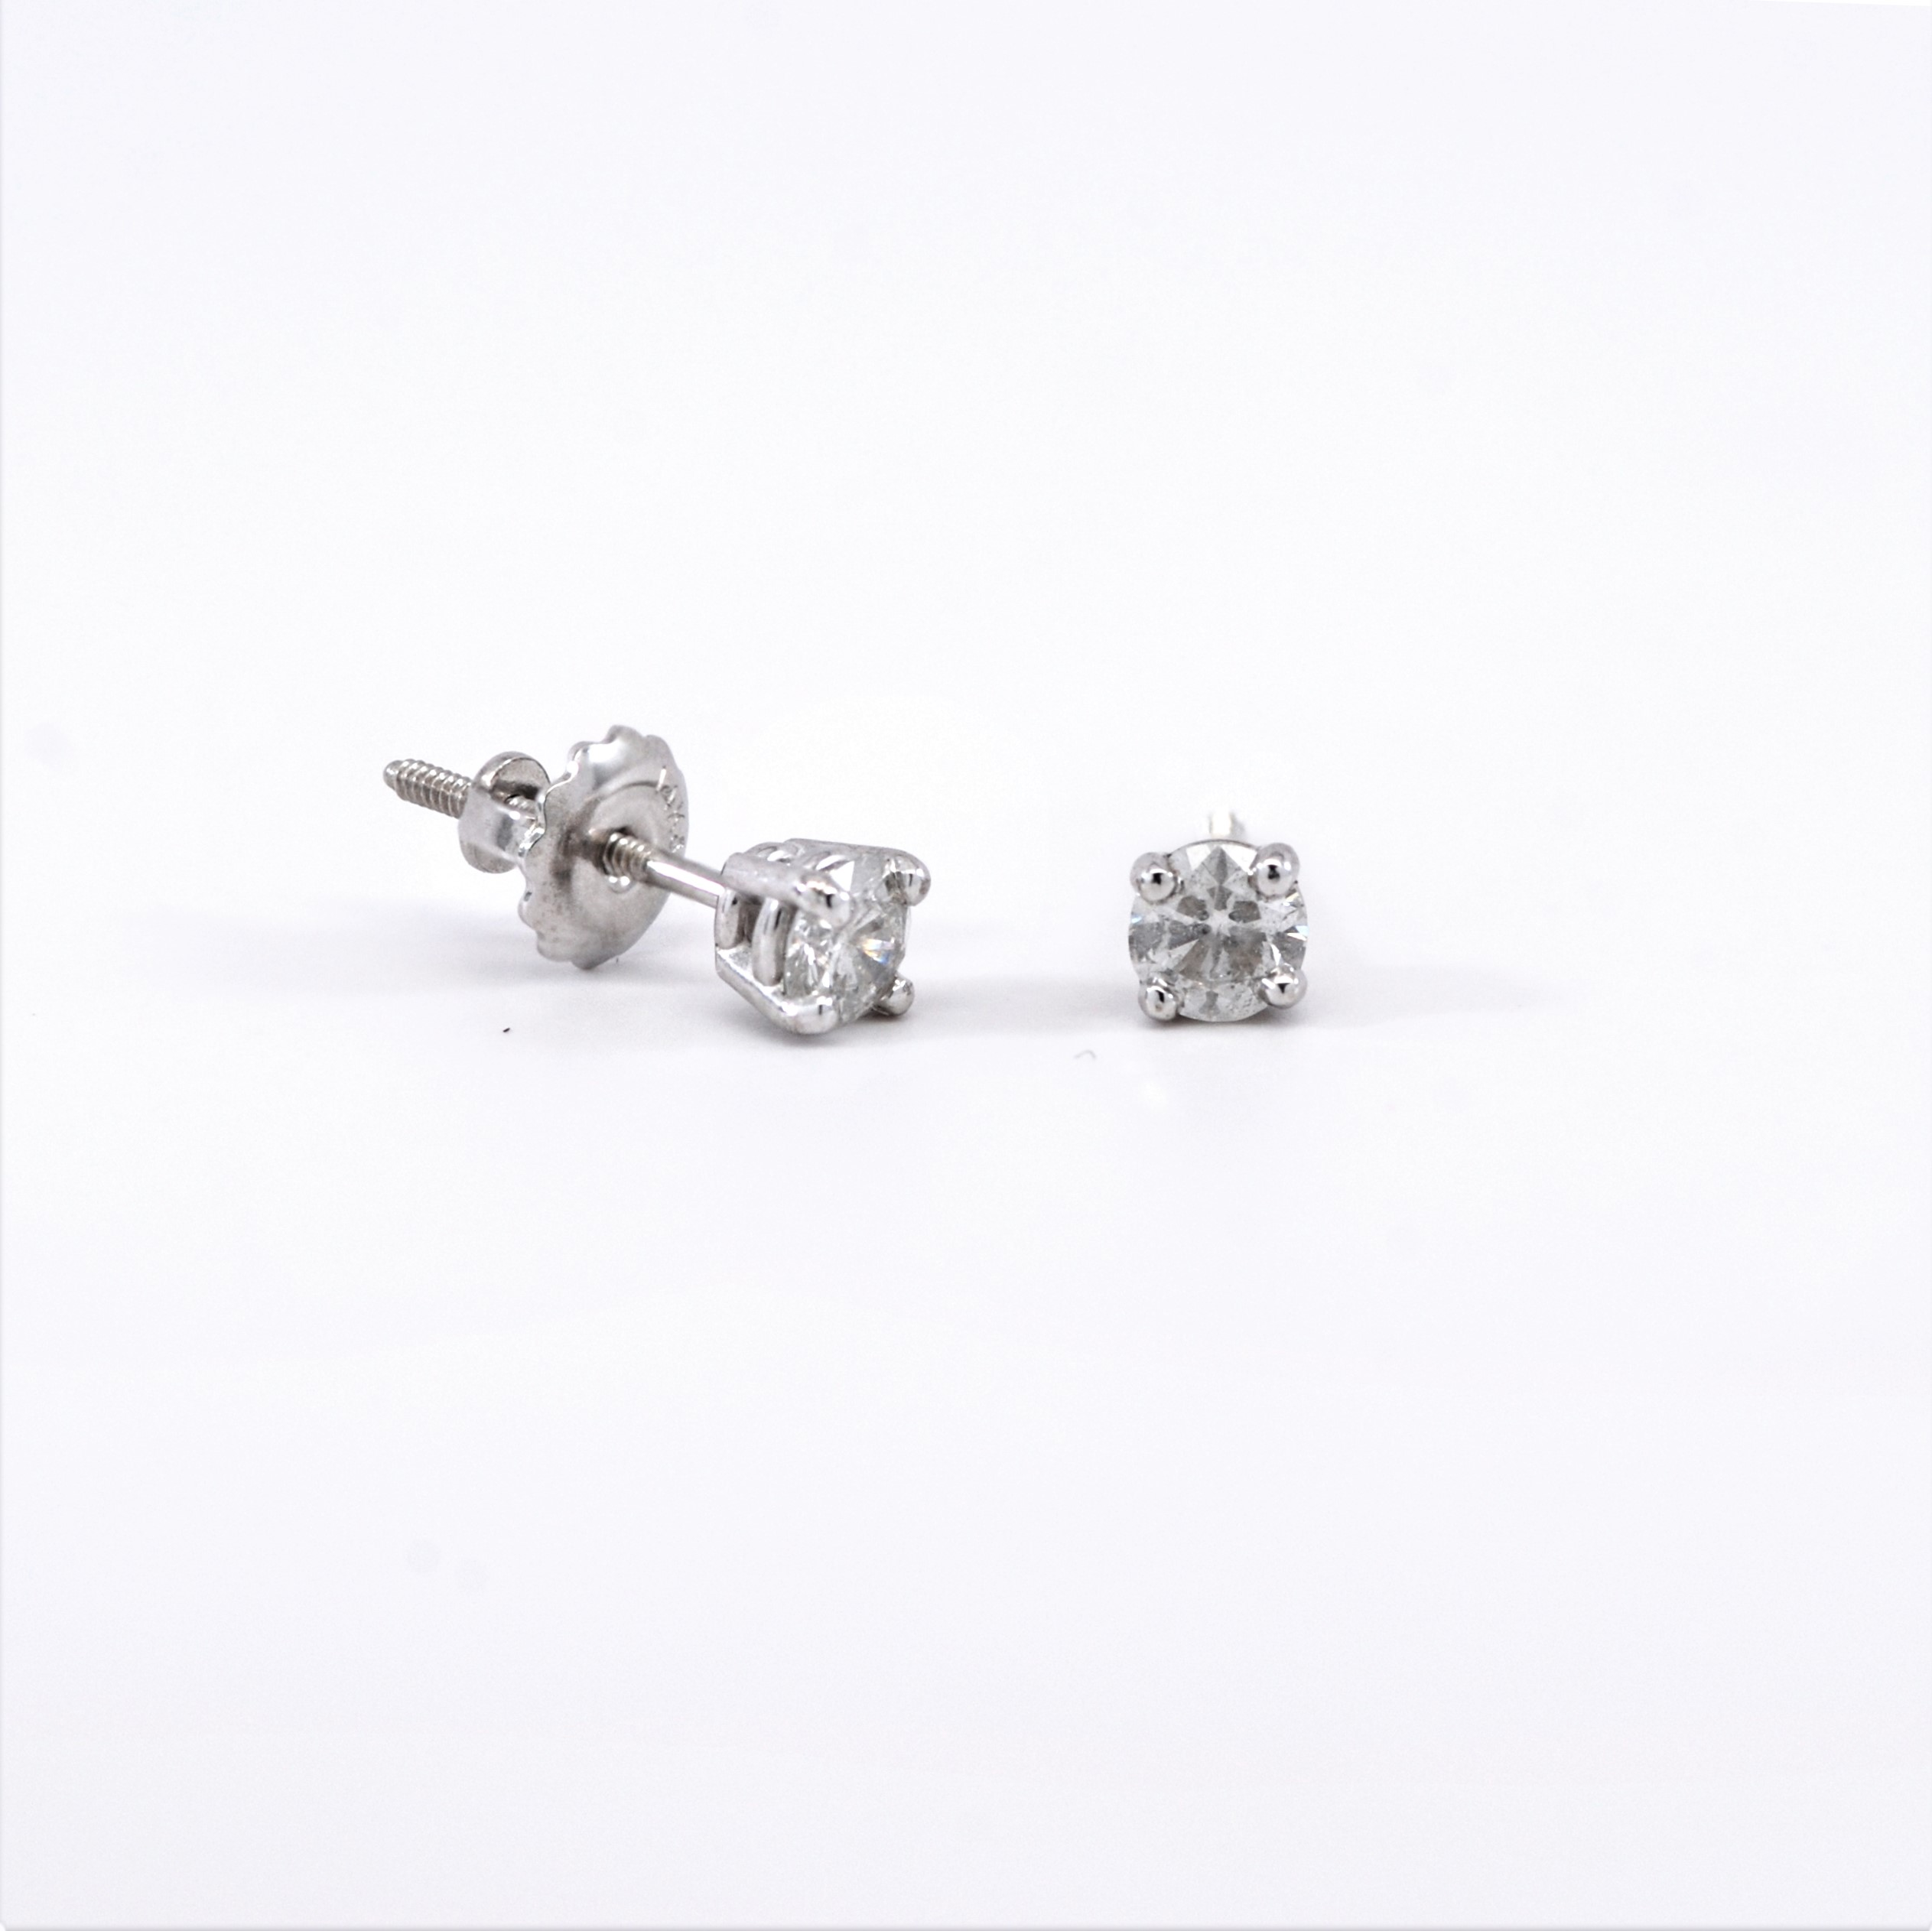 s graff earrings diamond christie jewels christies online stud eco